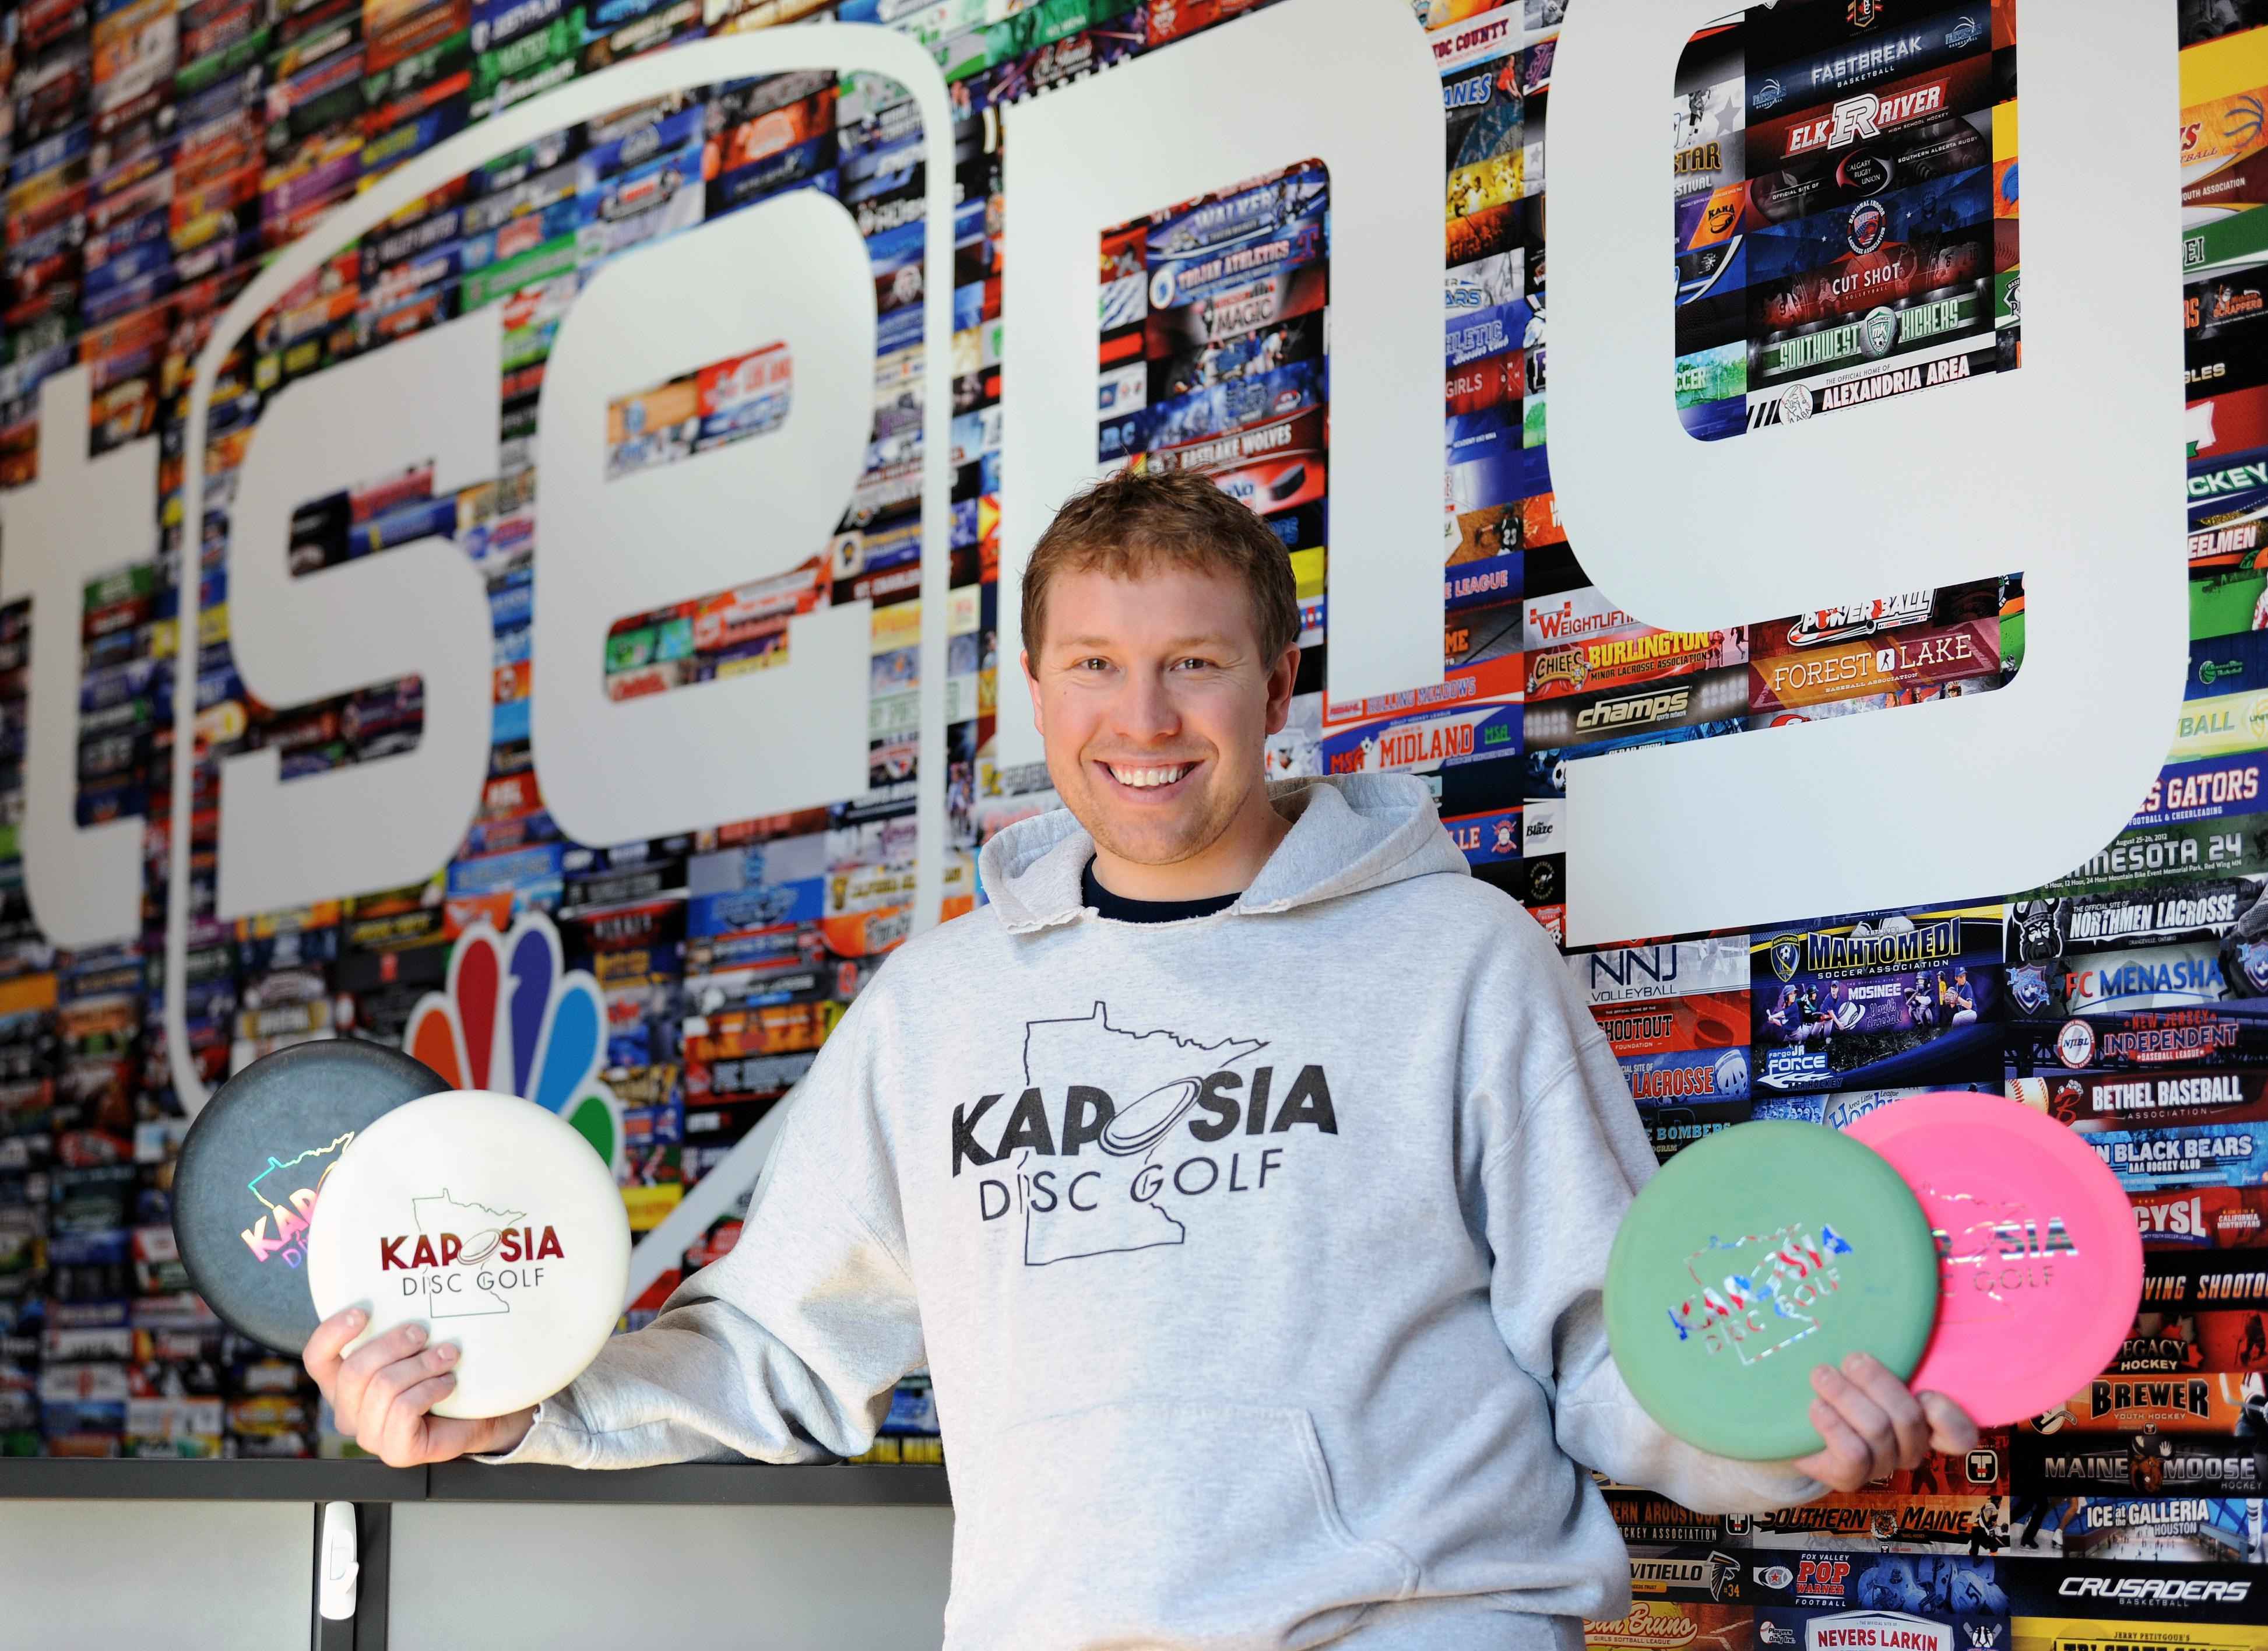 Phil Loprinzi with discs for disc golf